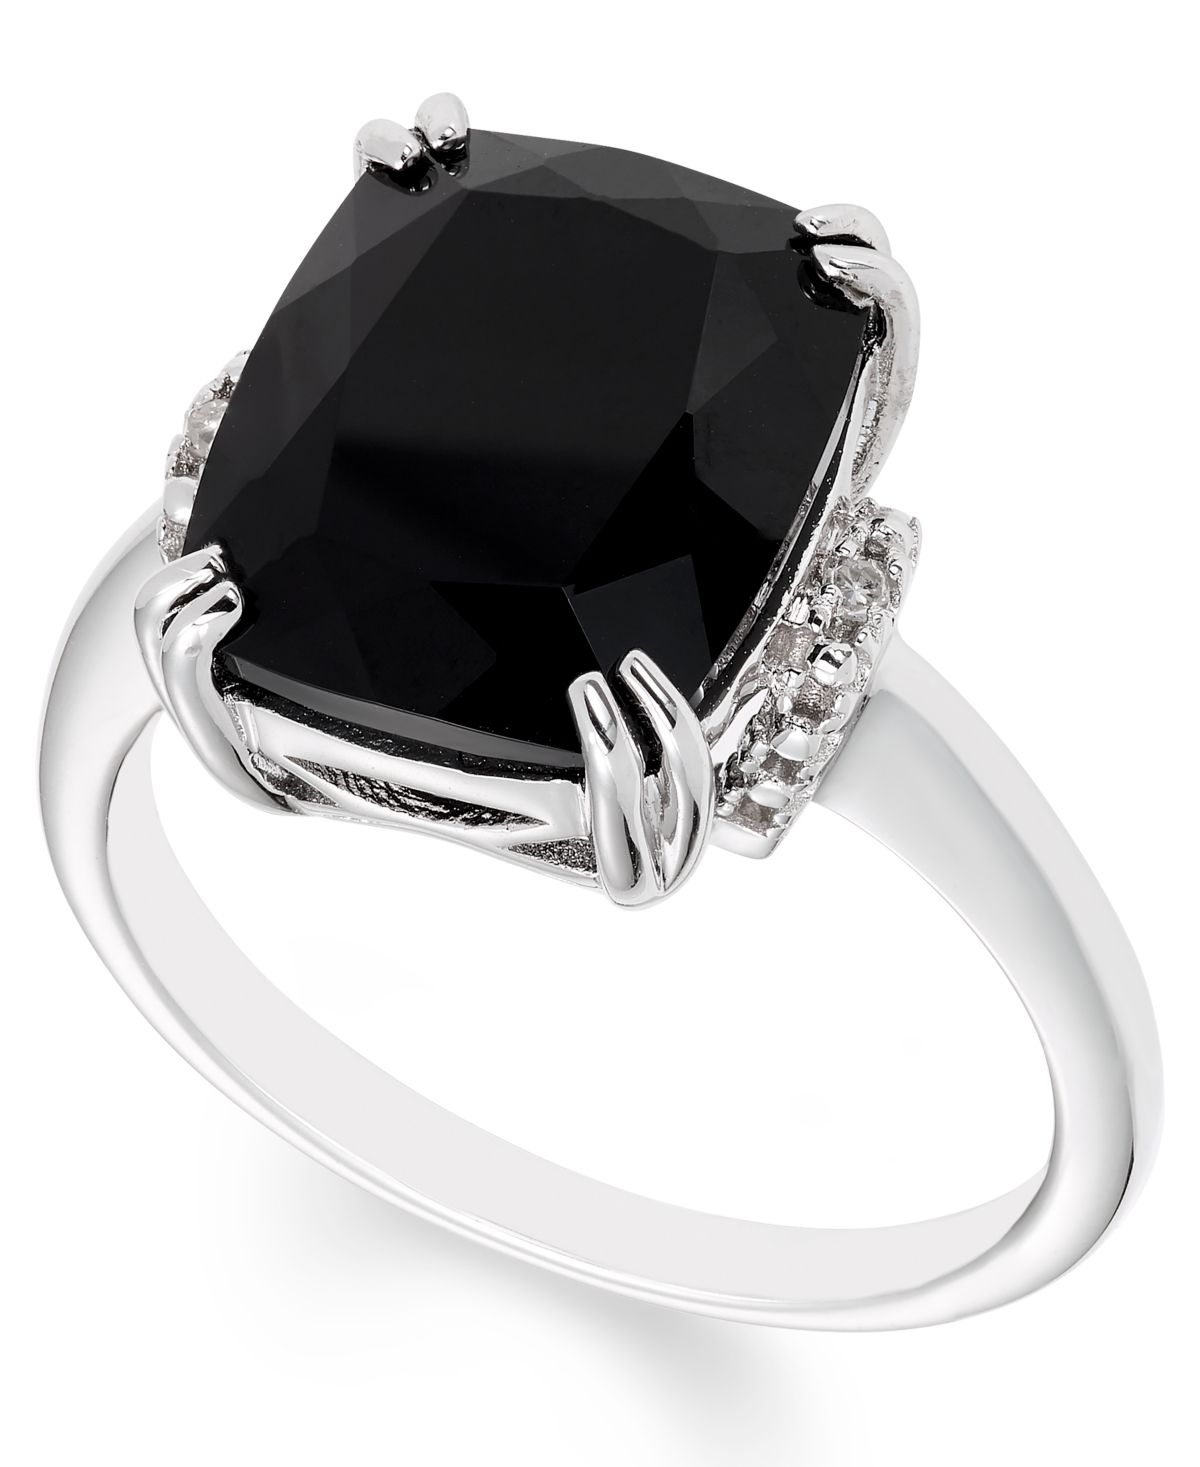 Black Onyx 12 Mm X 10 Mm Diamond Accent Ring In Sterling Silver Diamond Accent Ring Diamond Accent Jewelry